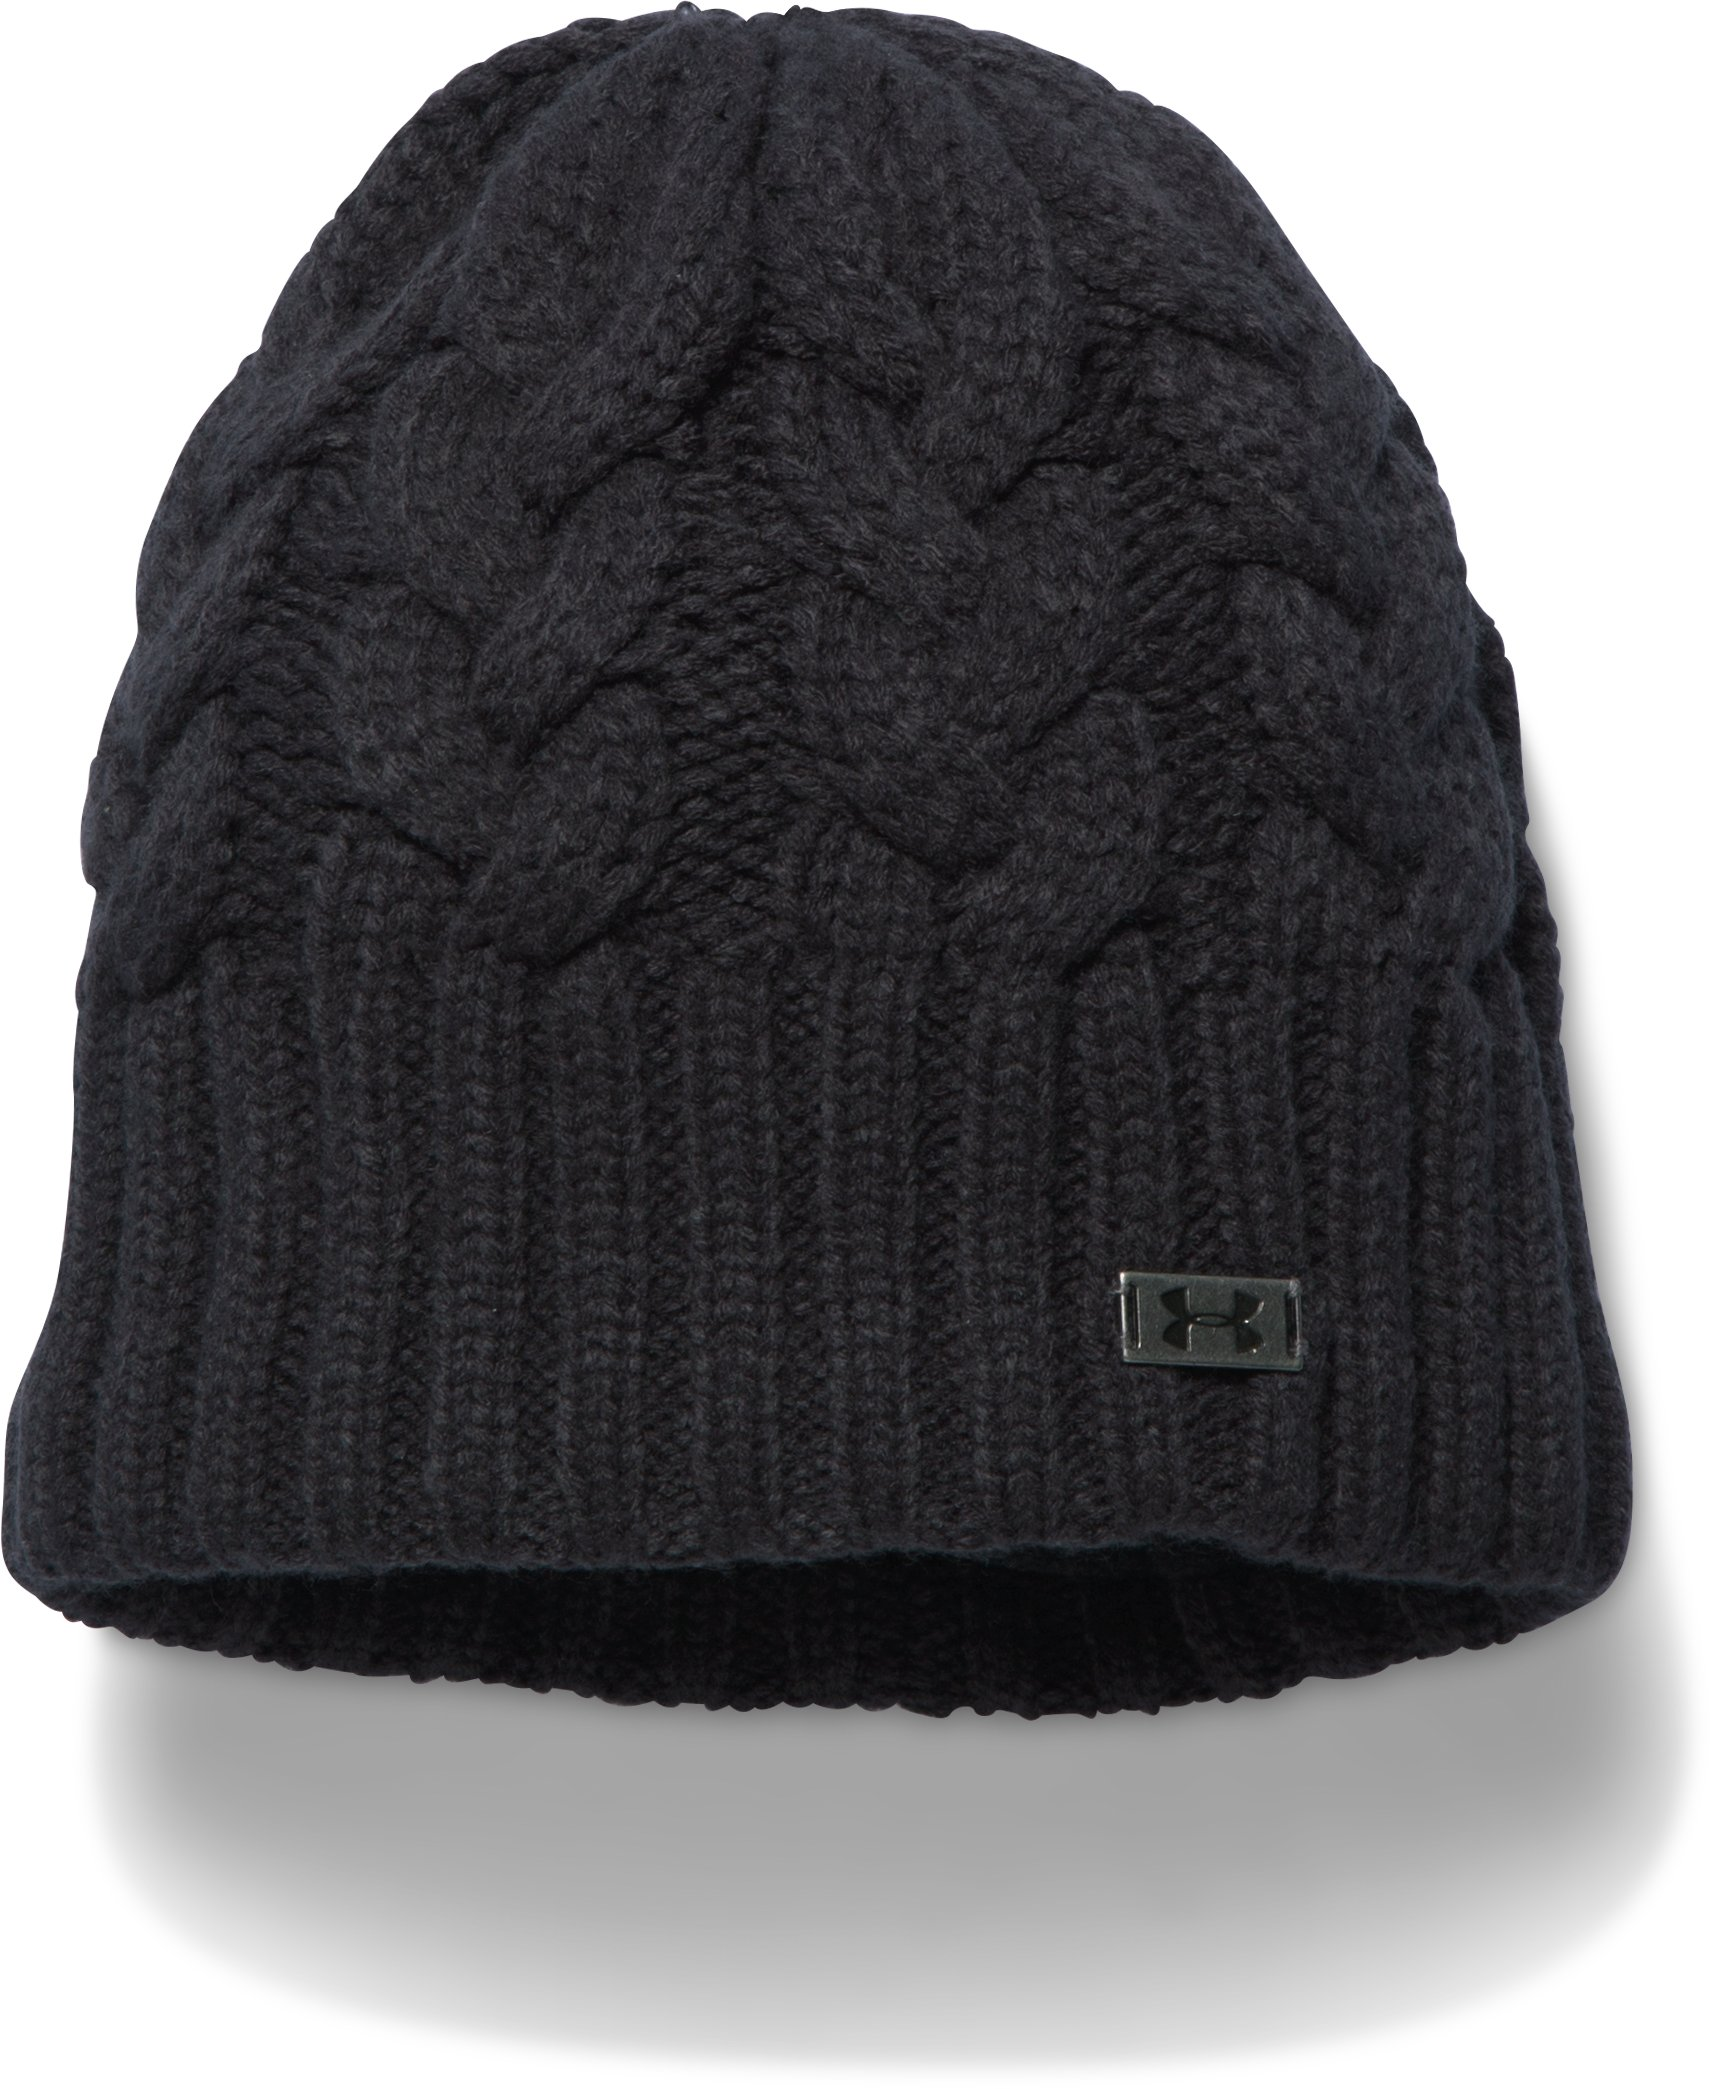 Women's UA Around Town Beanie, Black